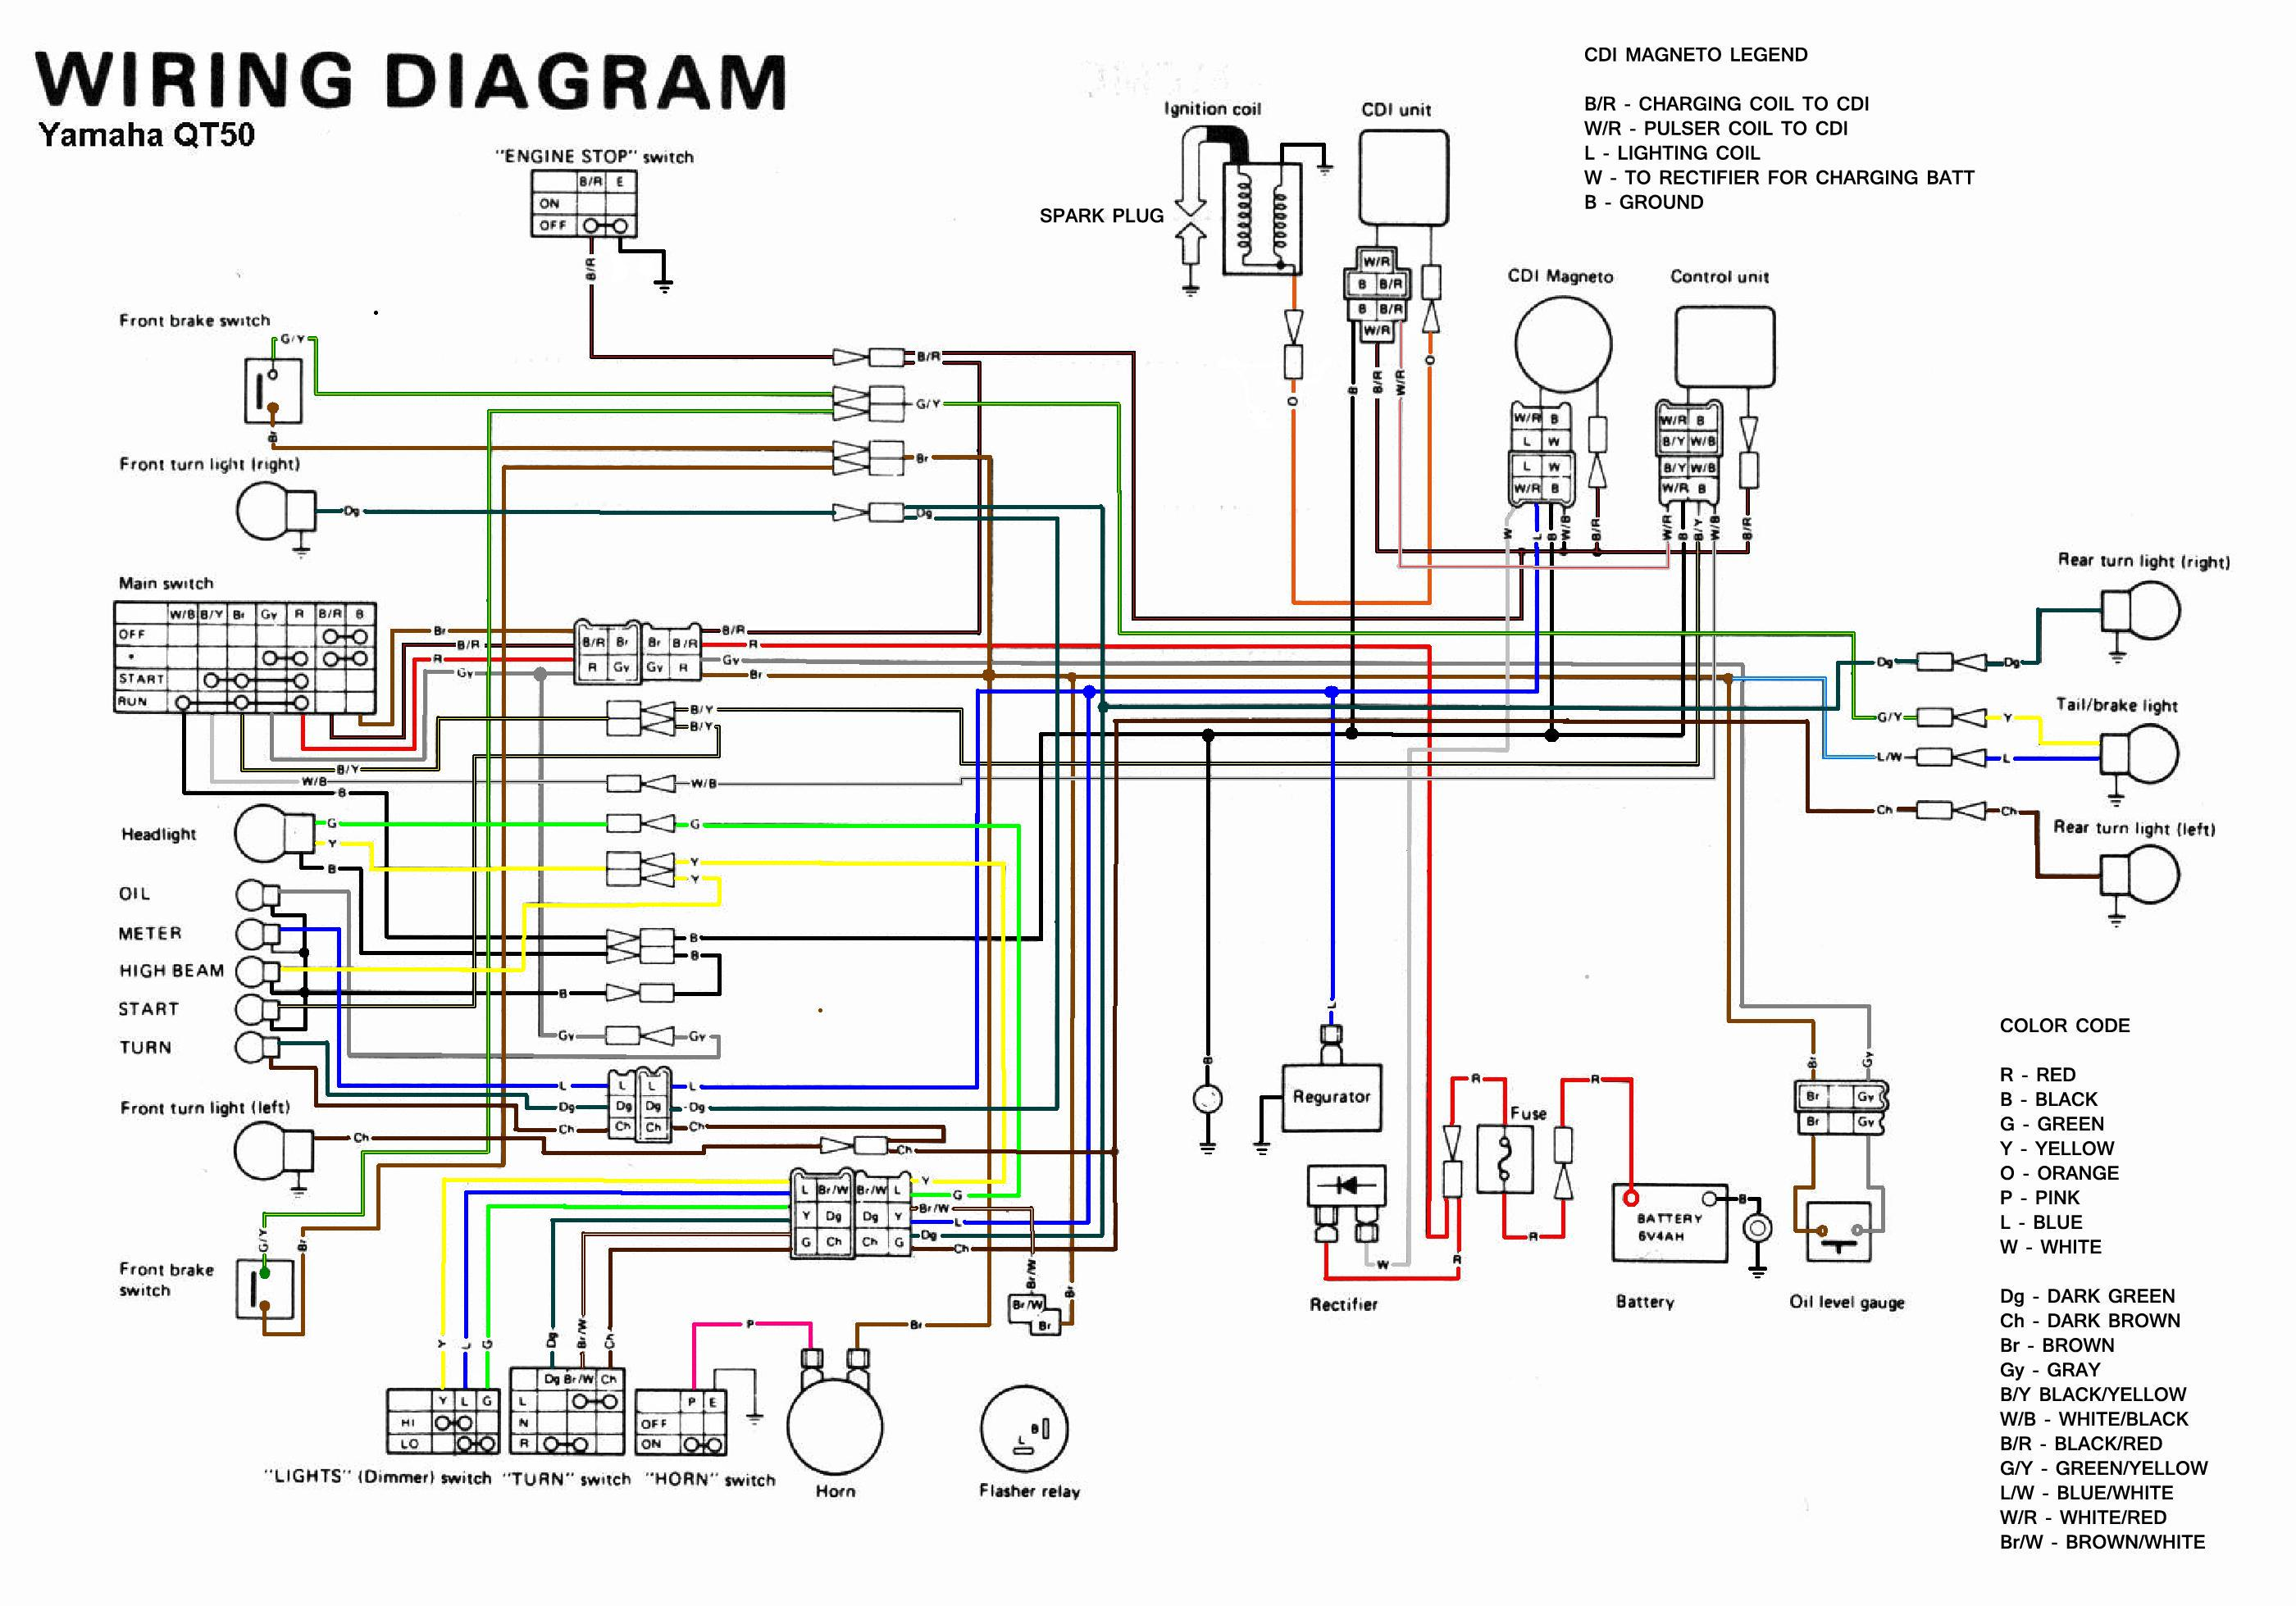 Yamaha_QT50_wiring_diagram_v5 Yamaha Wiring Diagram Symbols on g1e, big bear 350, big bear 400,